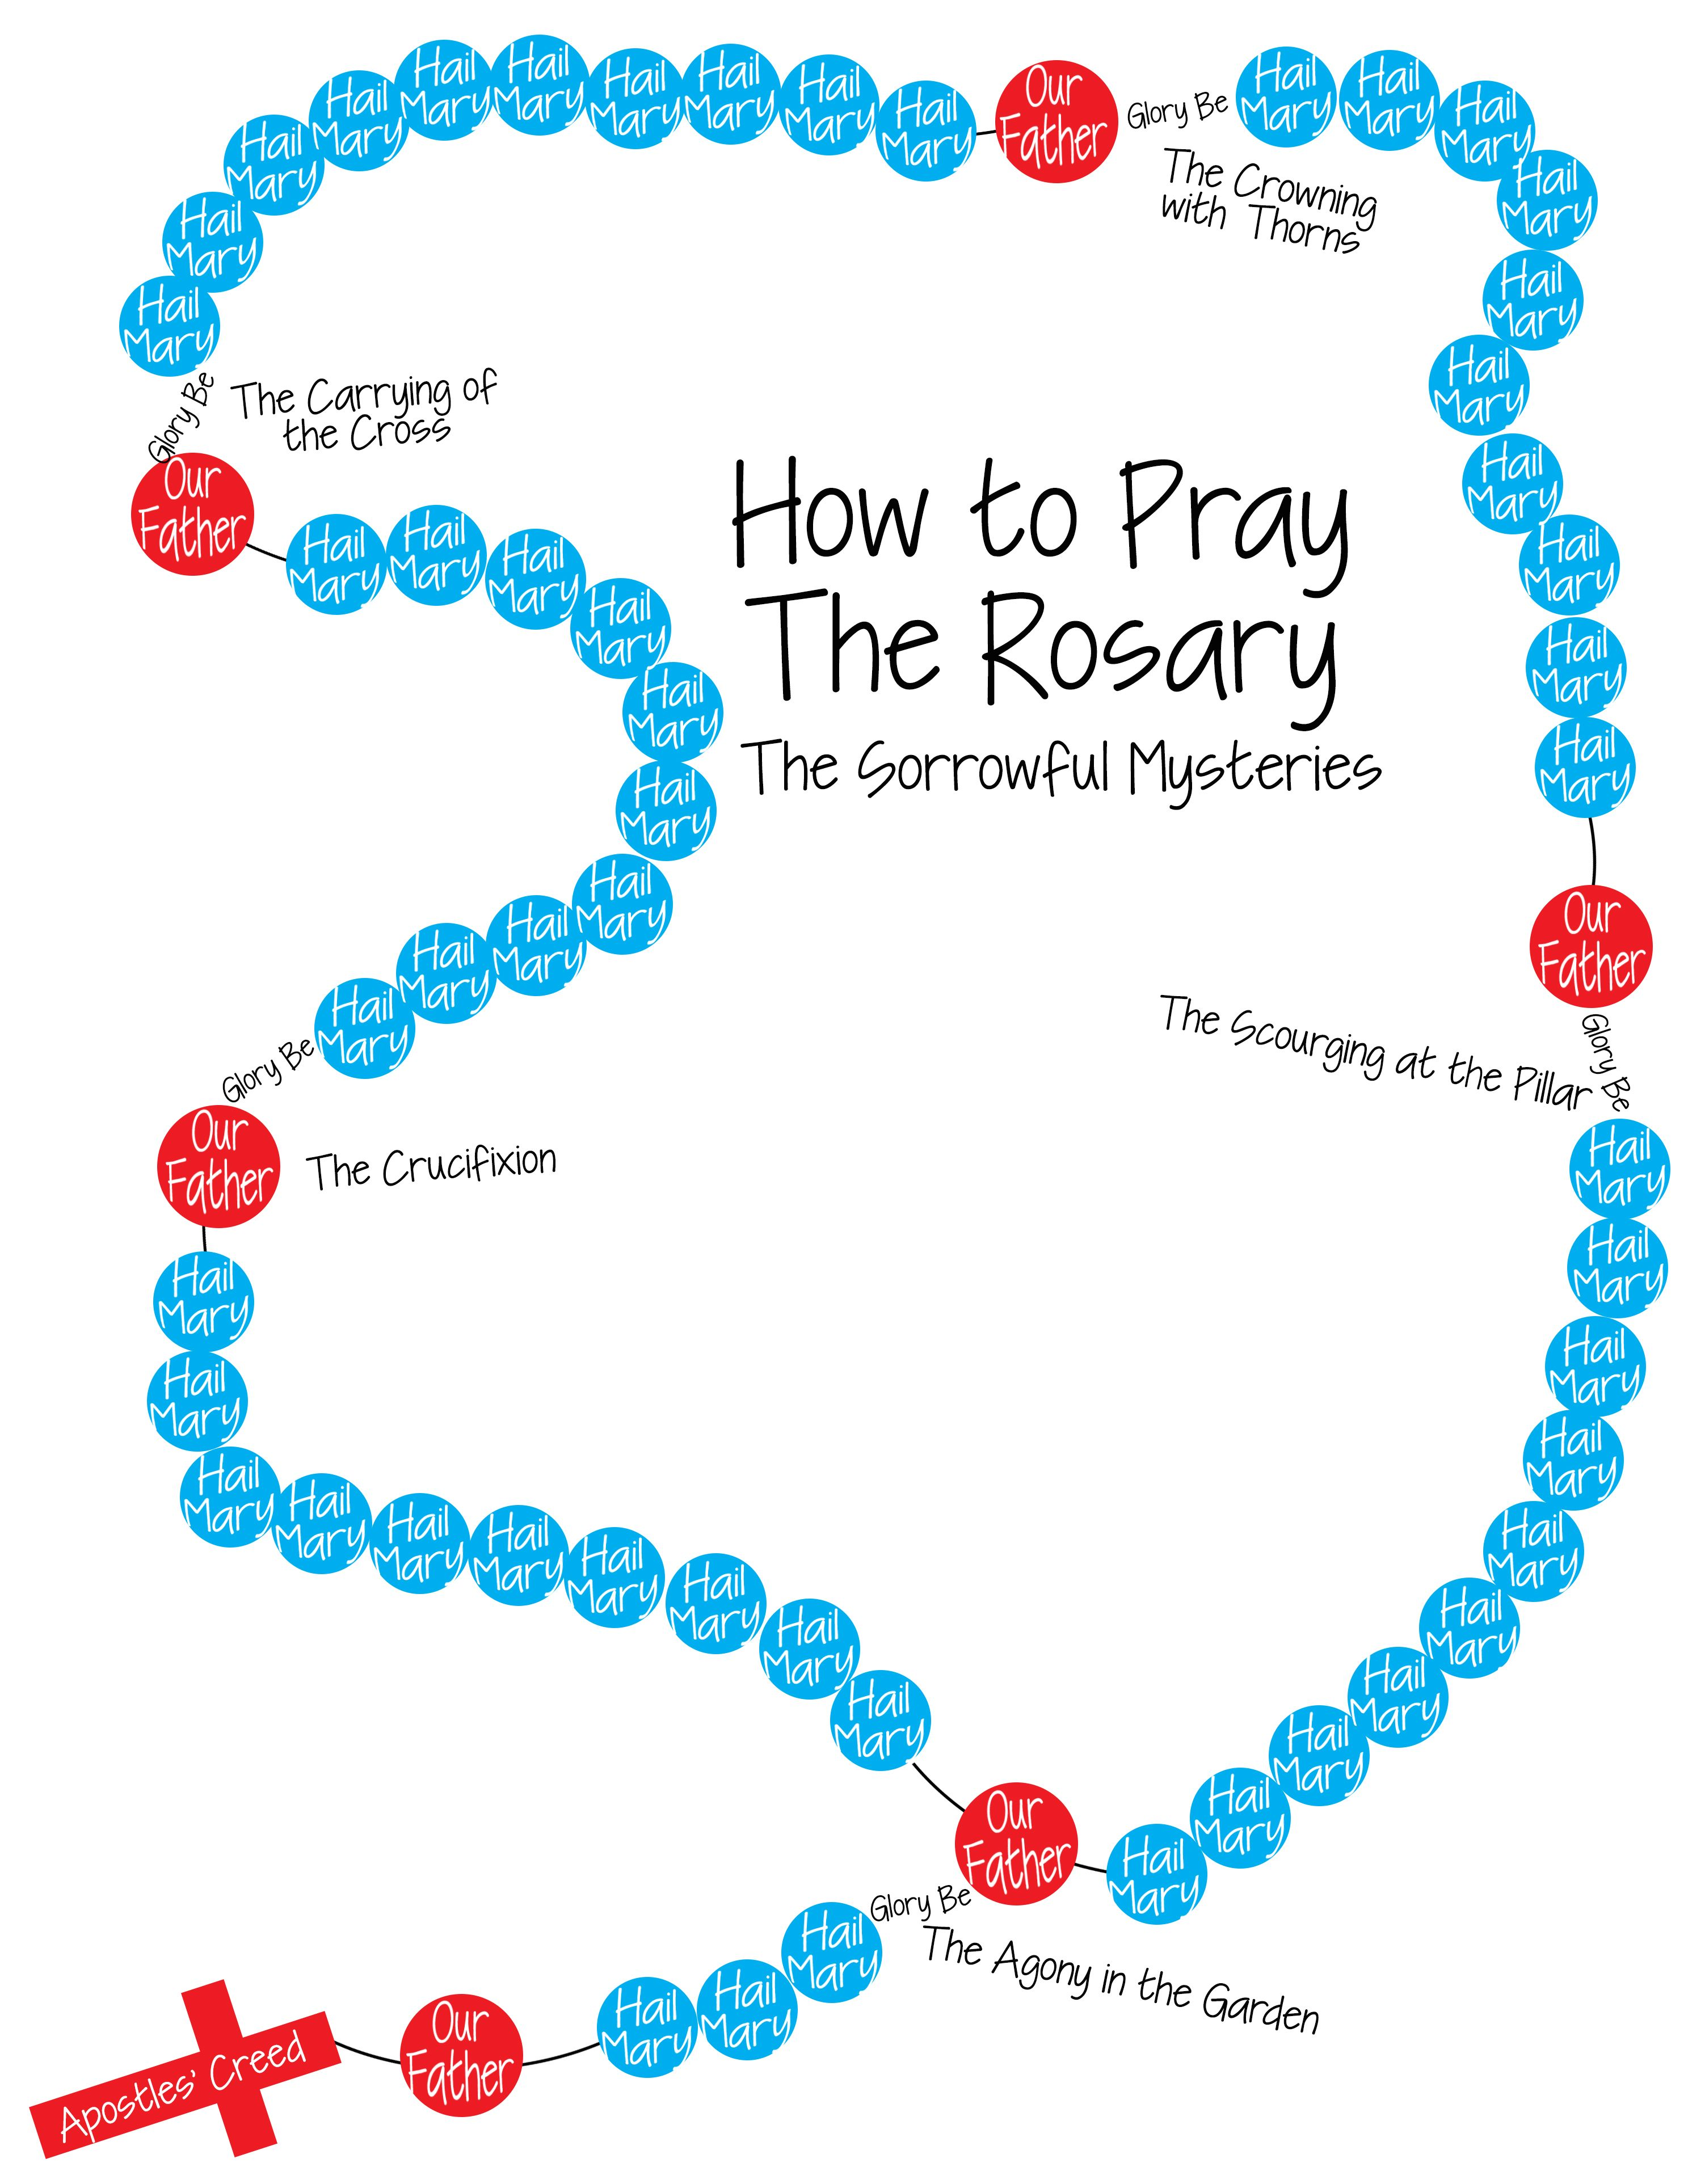 How To Pray The Rosary Visual Aid For Kids With Images